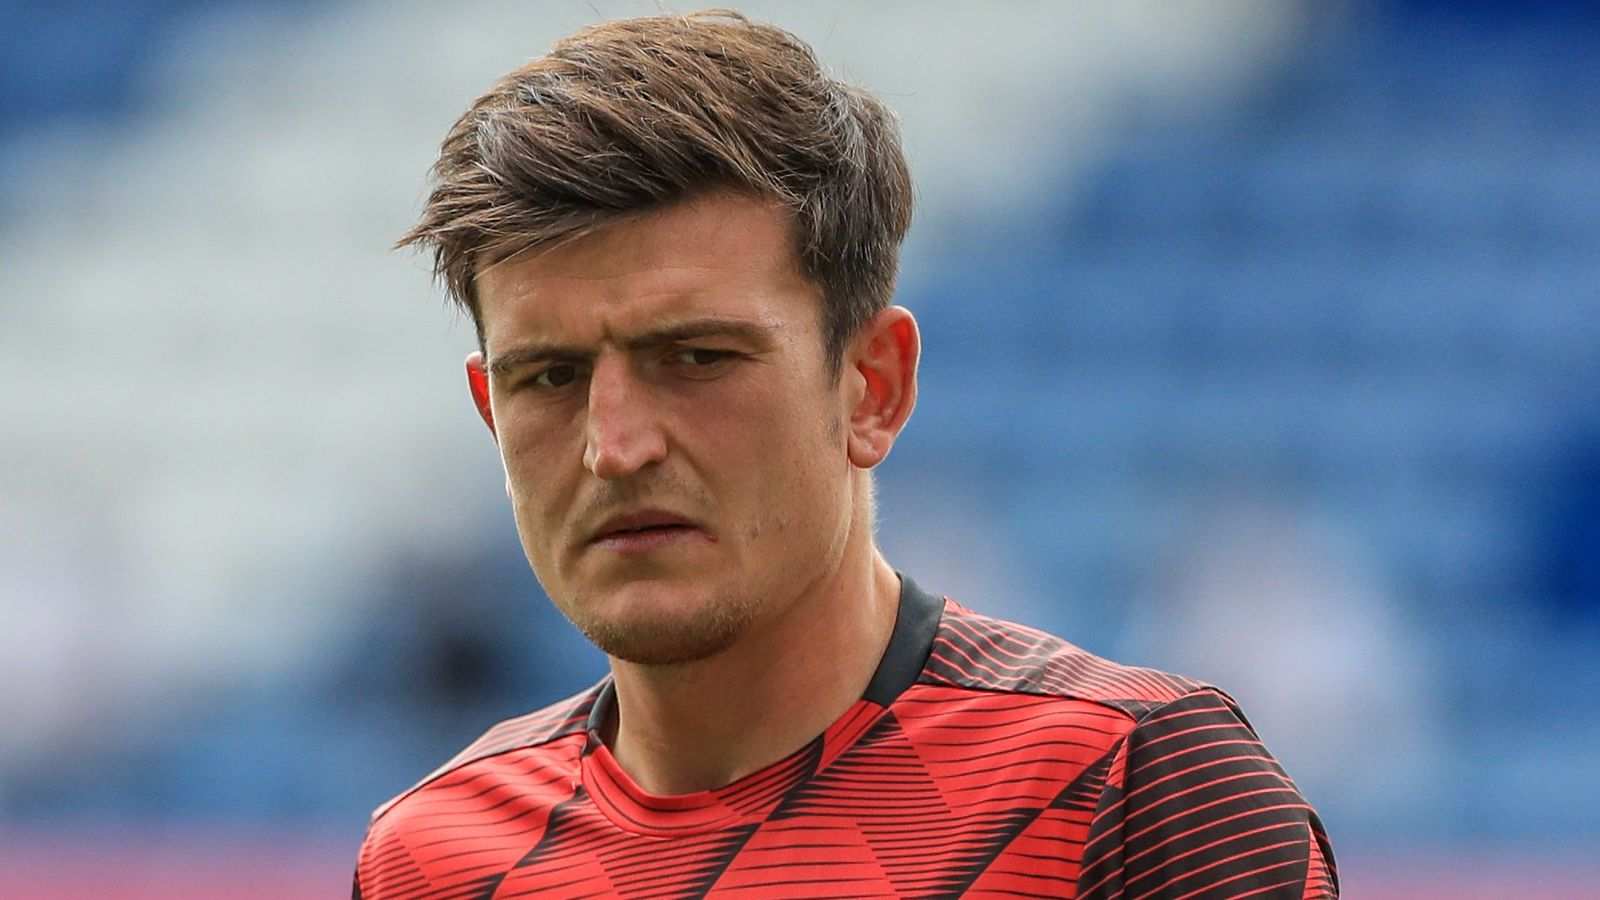 Harry Maguire 'brawl' sparked after sister injected with suspected 'rape  drug', court hears | UK News | Sky News